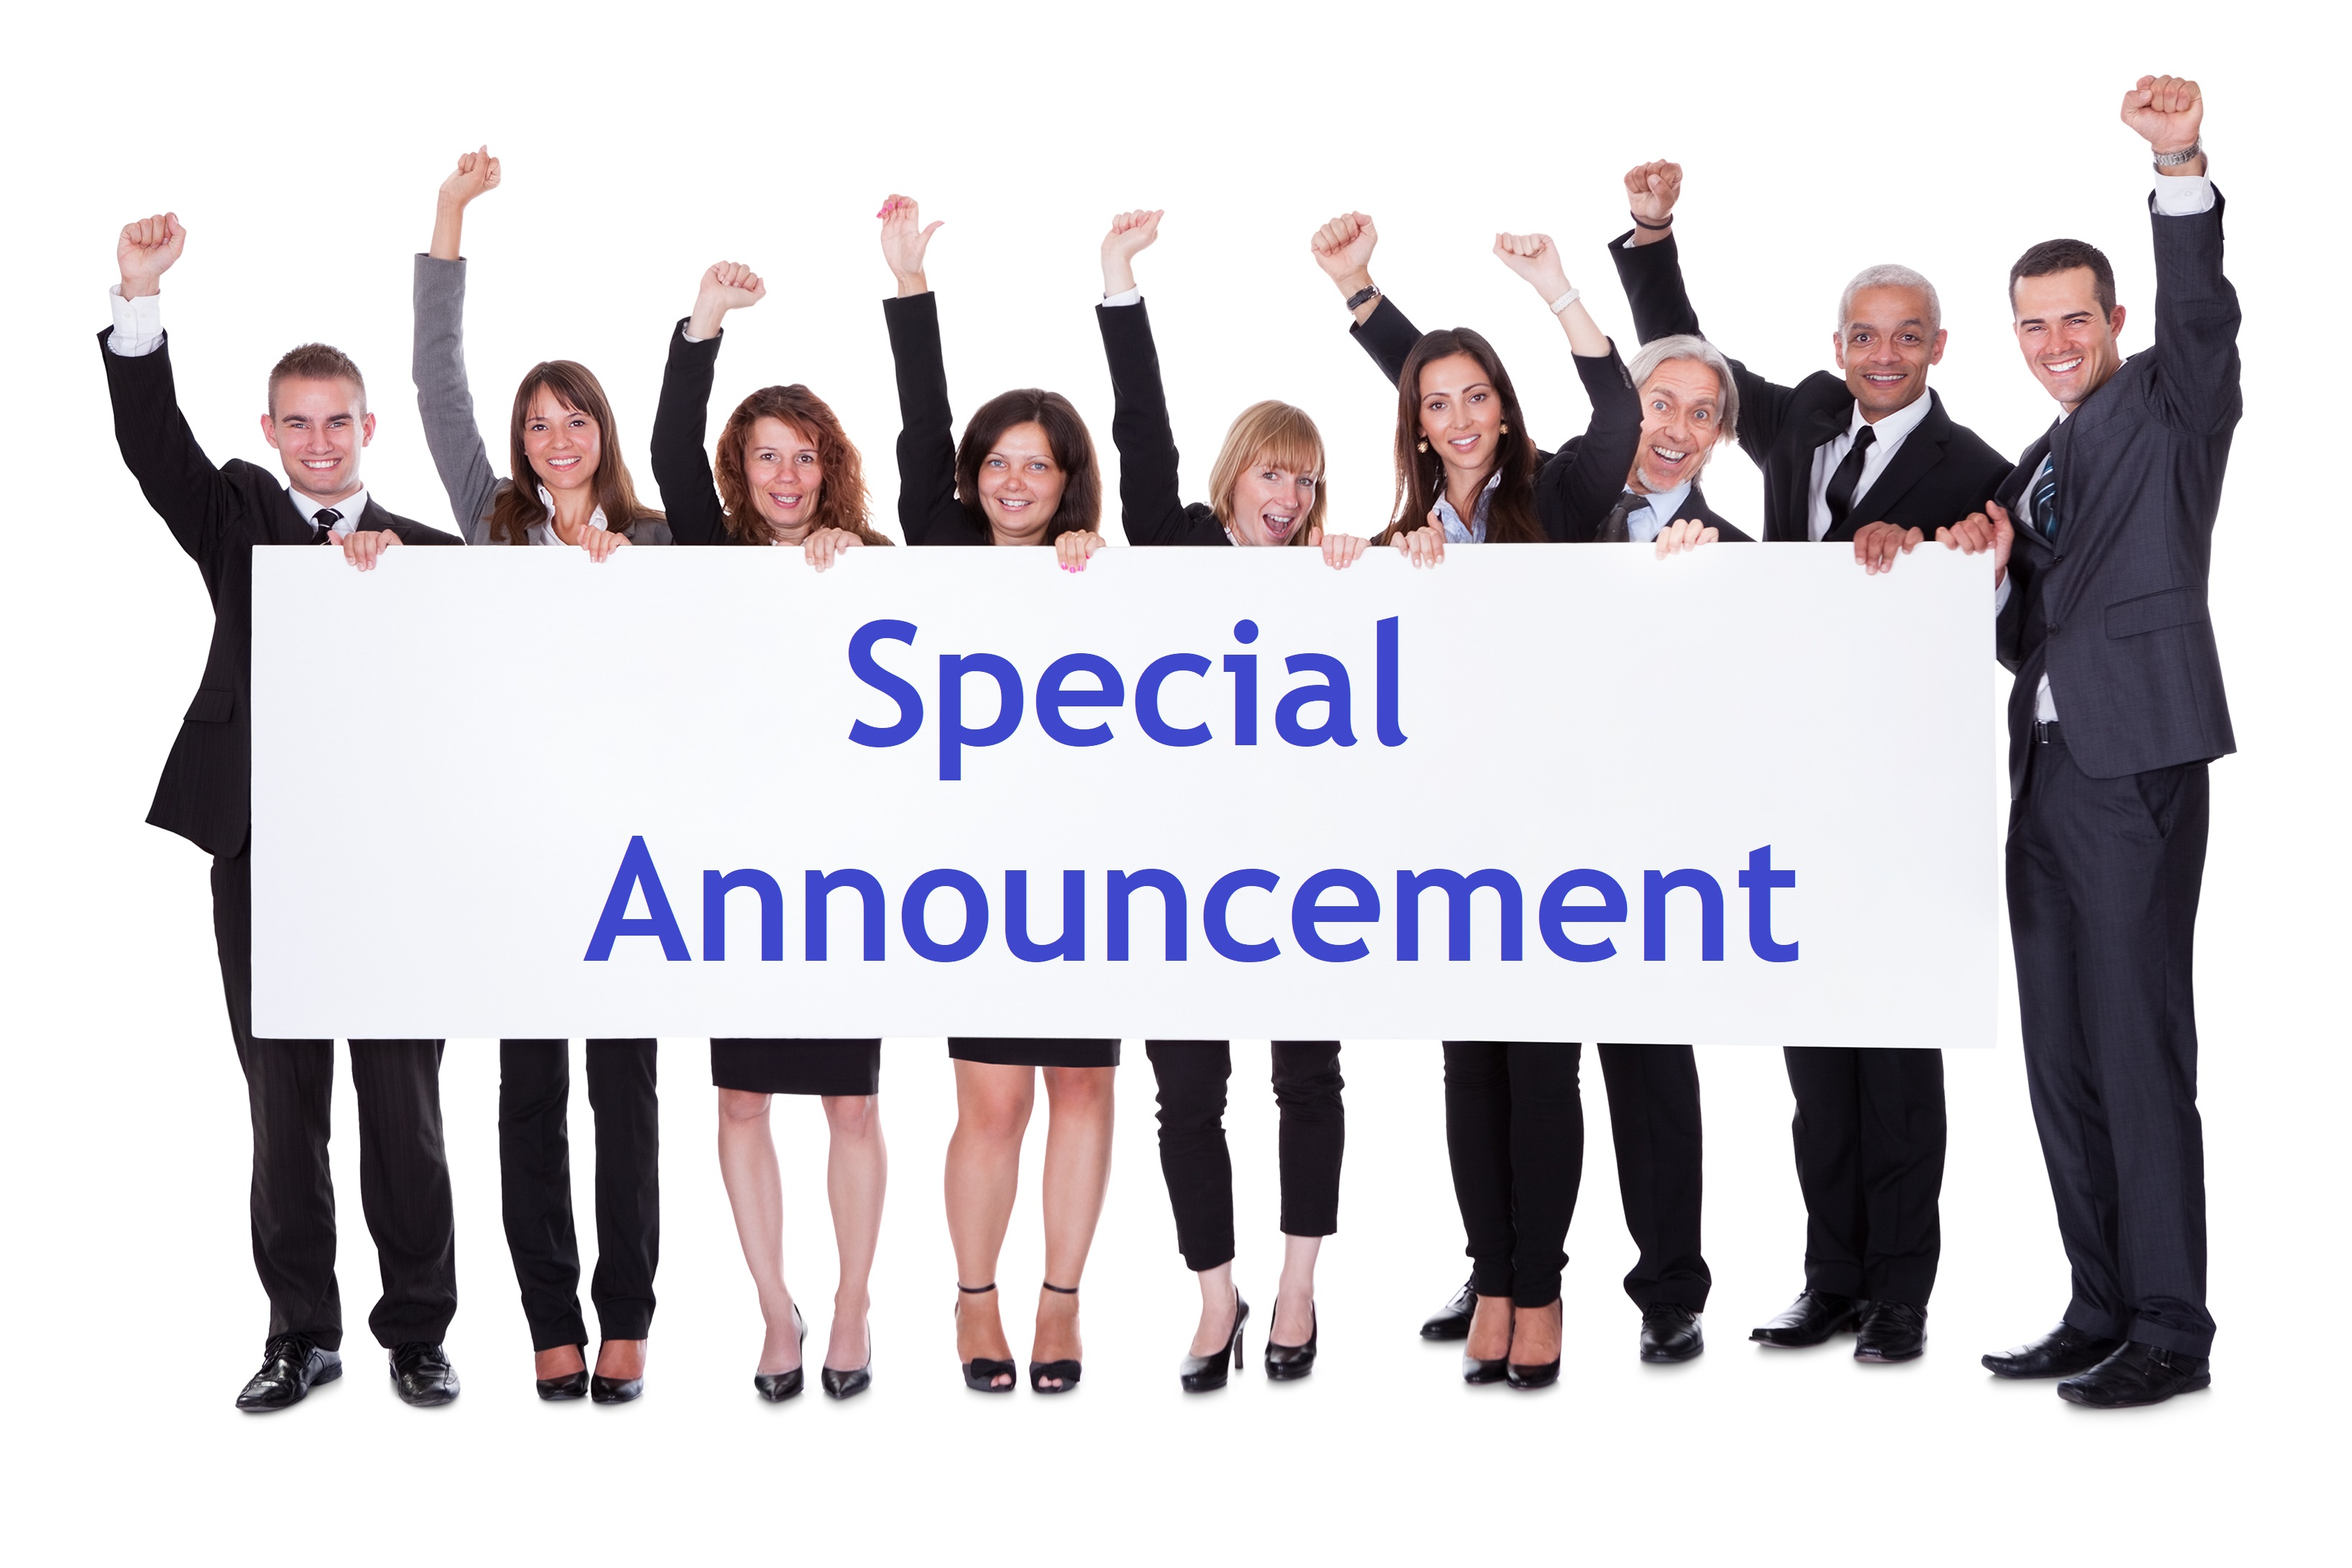 Special Announcement – Medical Claims Administration Services – March 21, 2018